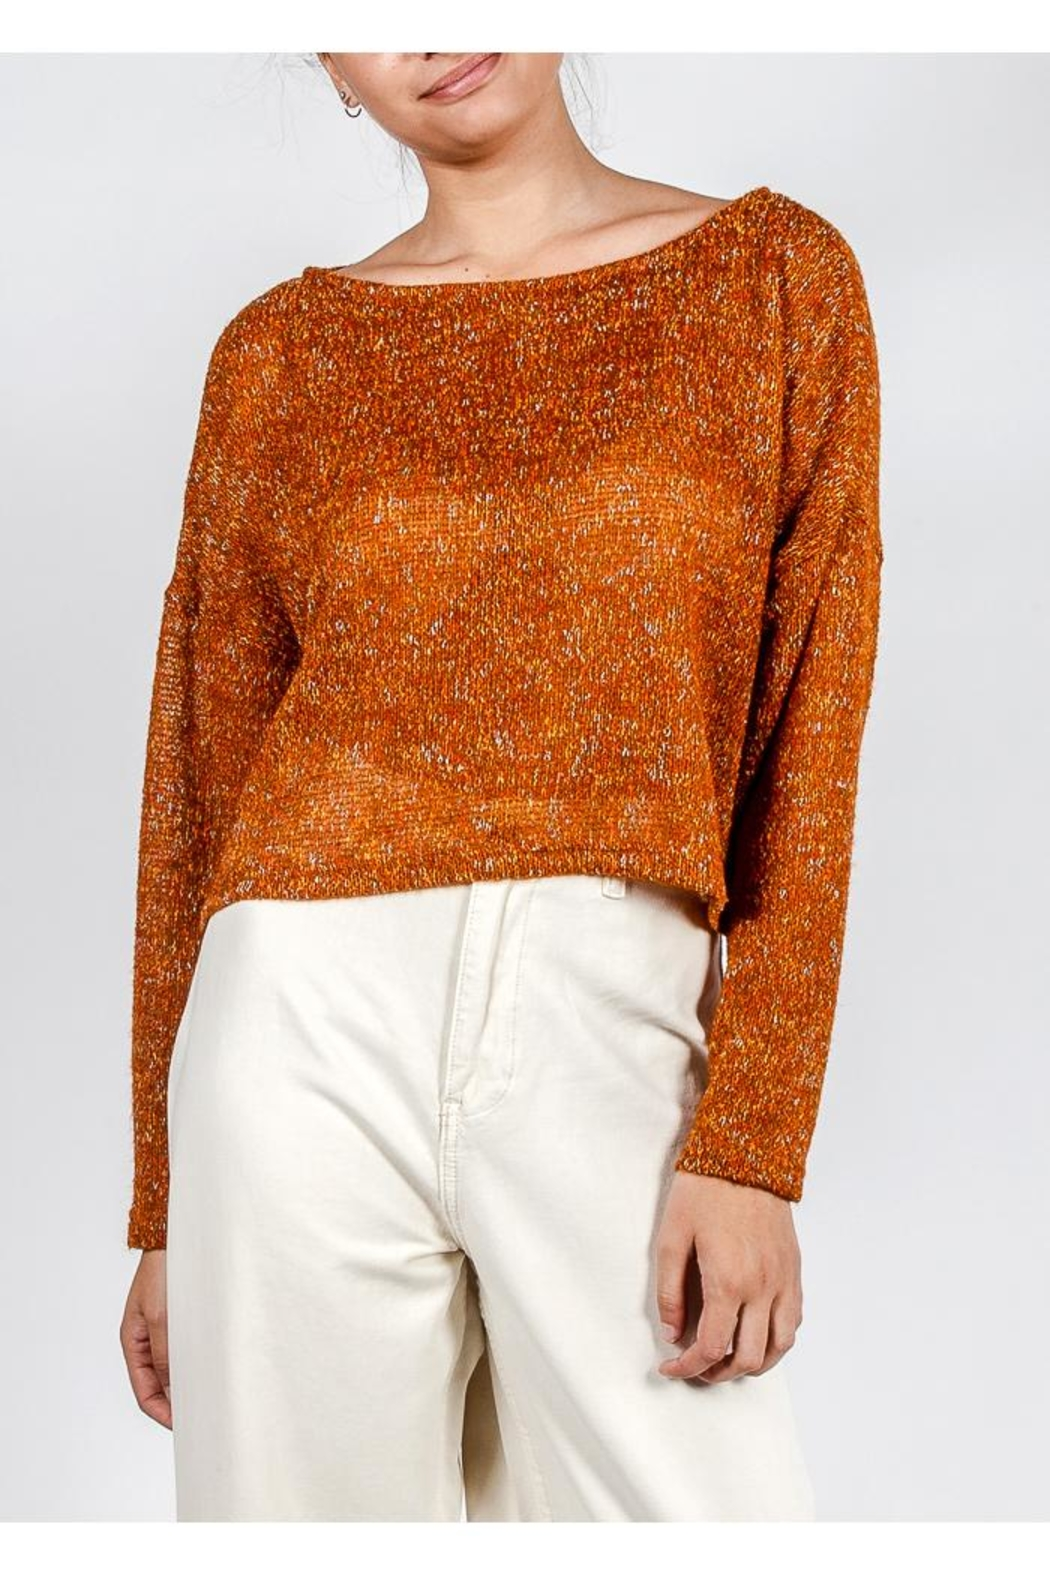 Lumiere Coloful Knit Sweater - Front Cropped Image